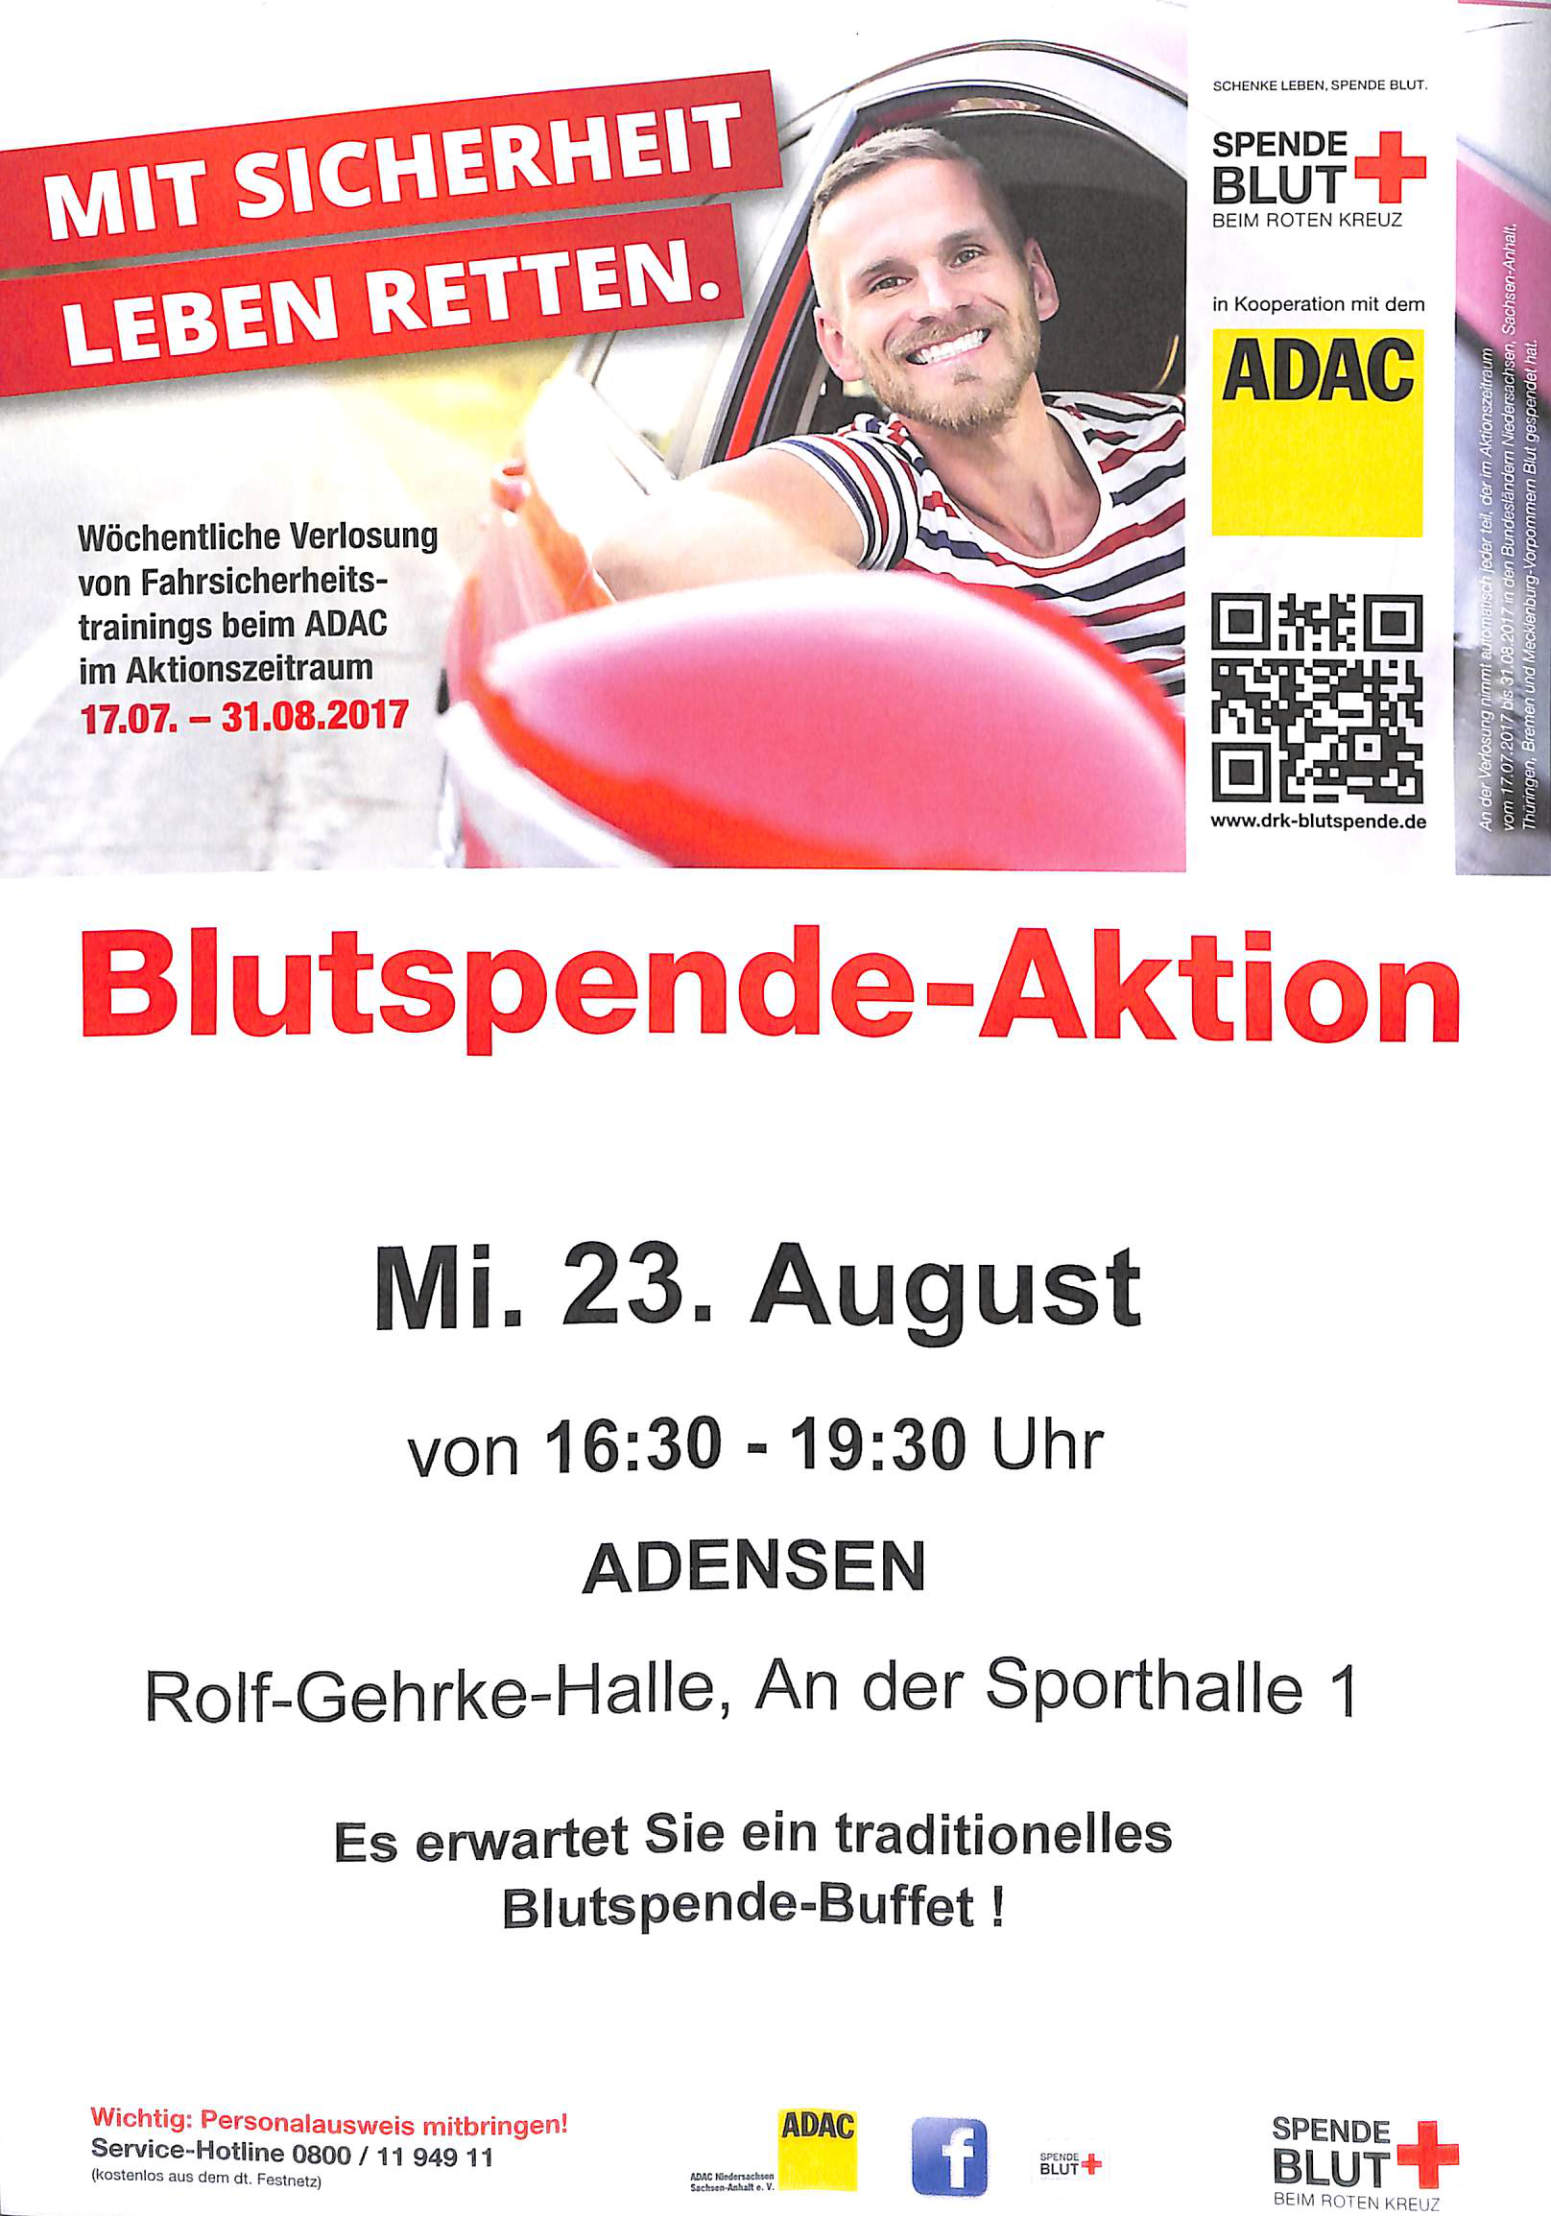 Blutspende am 23.08.17 in Adensen